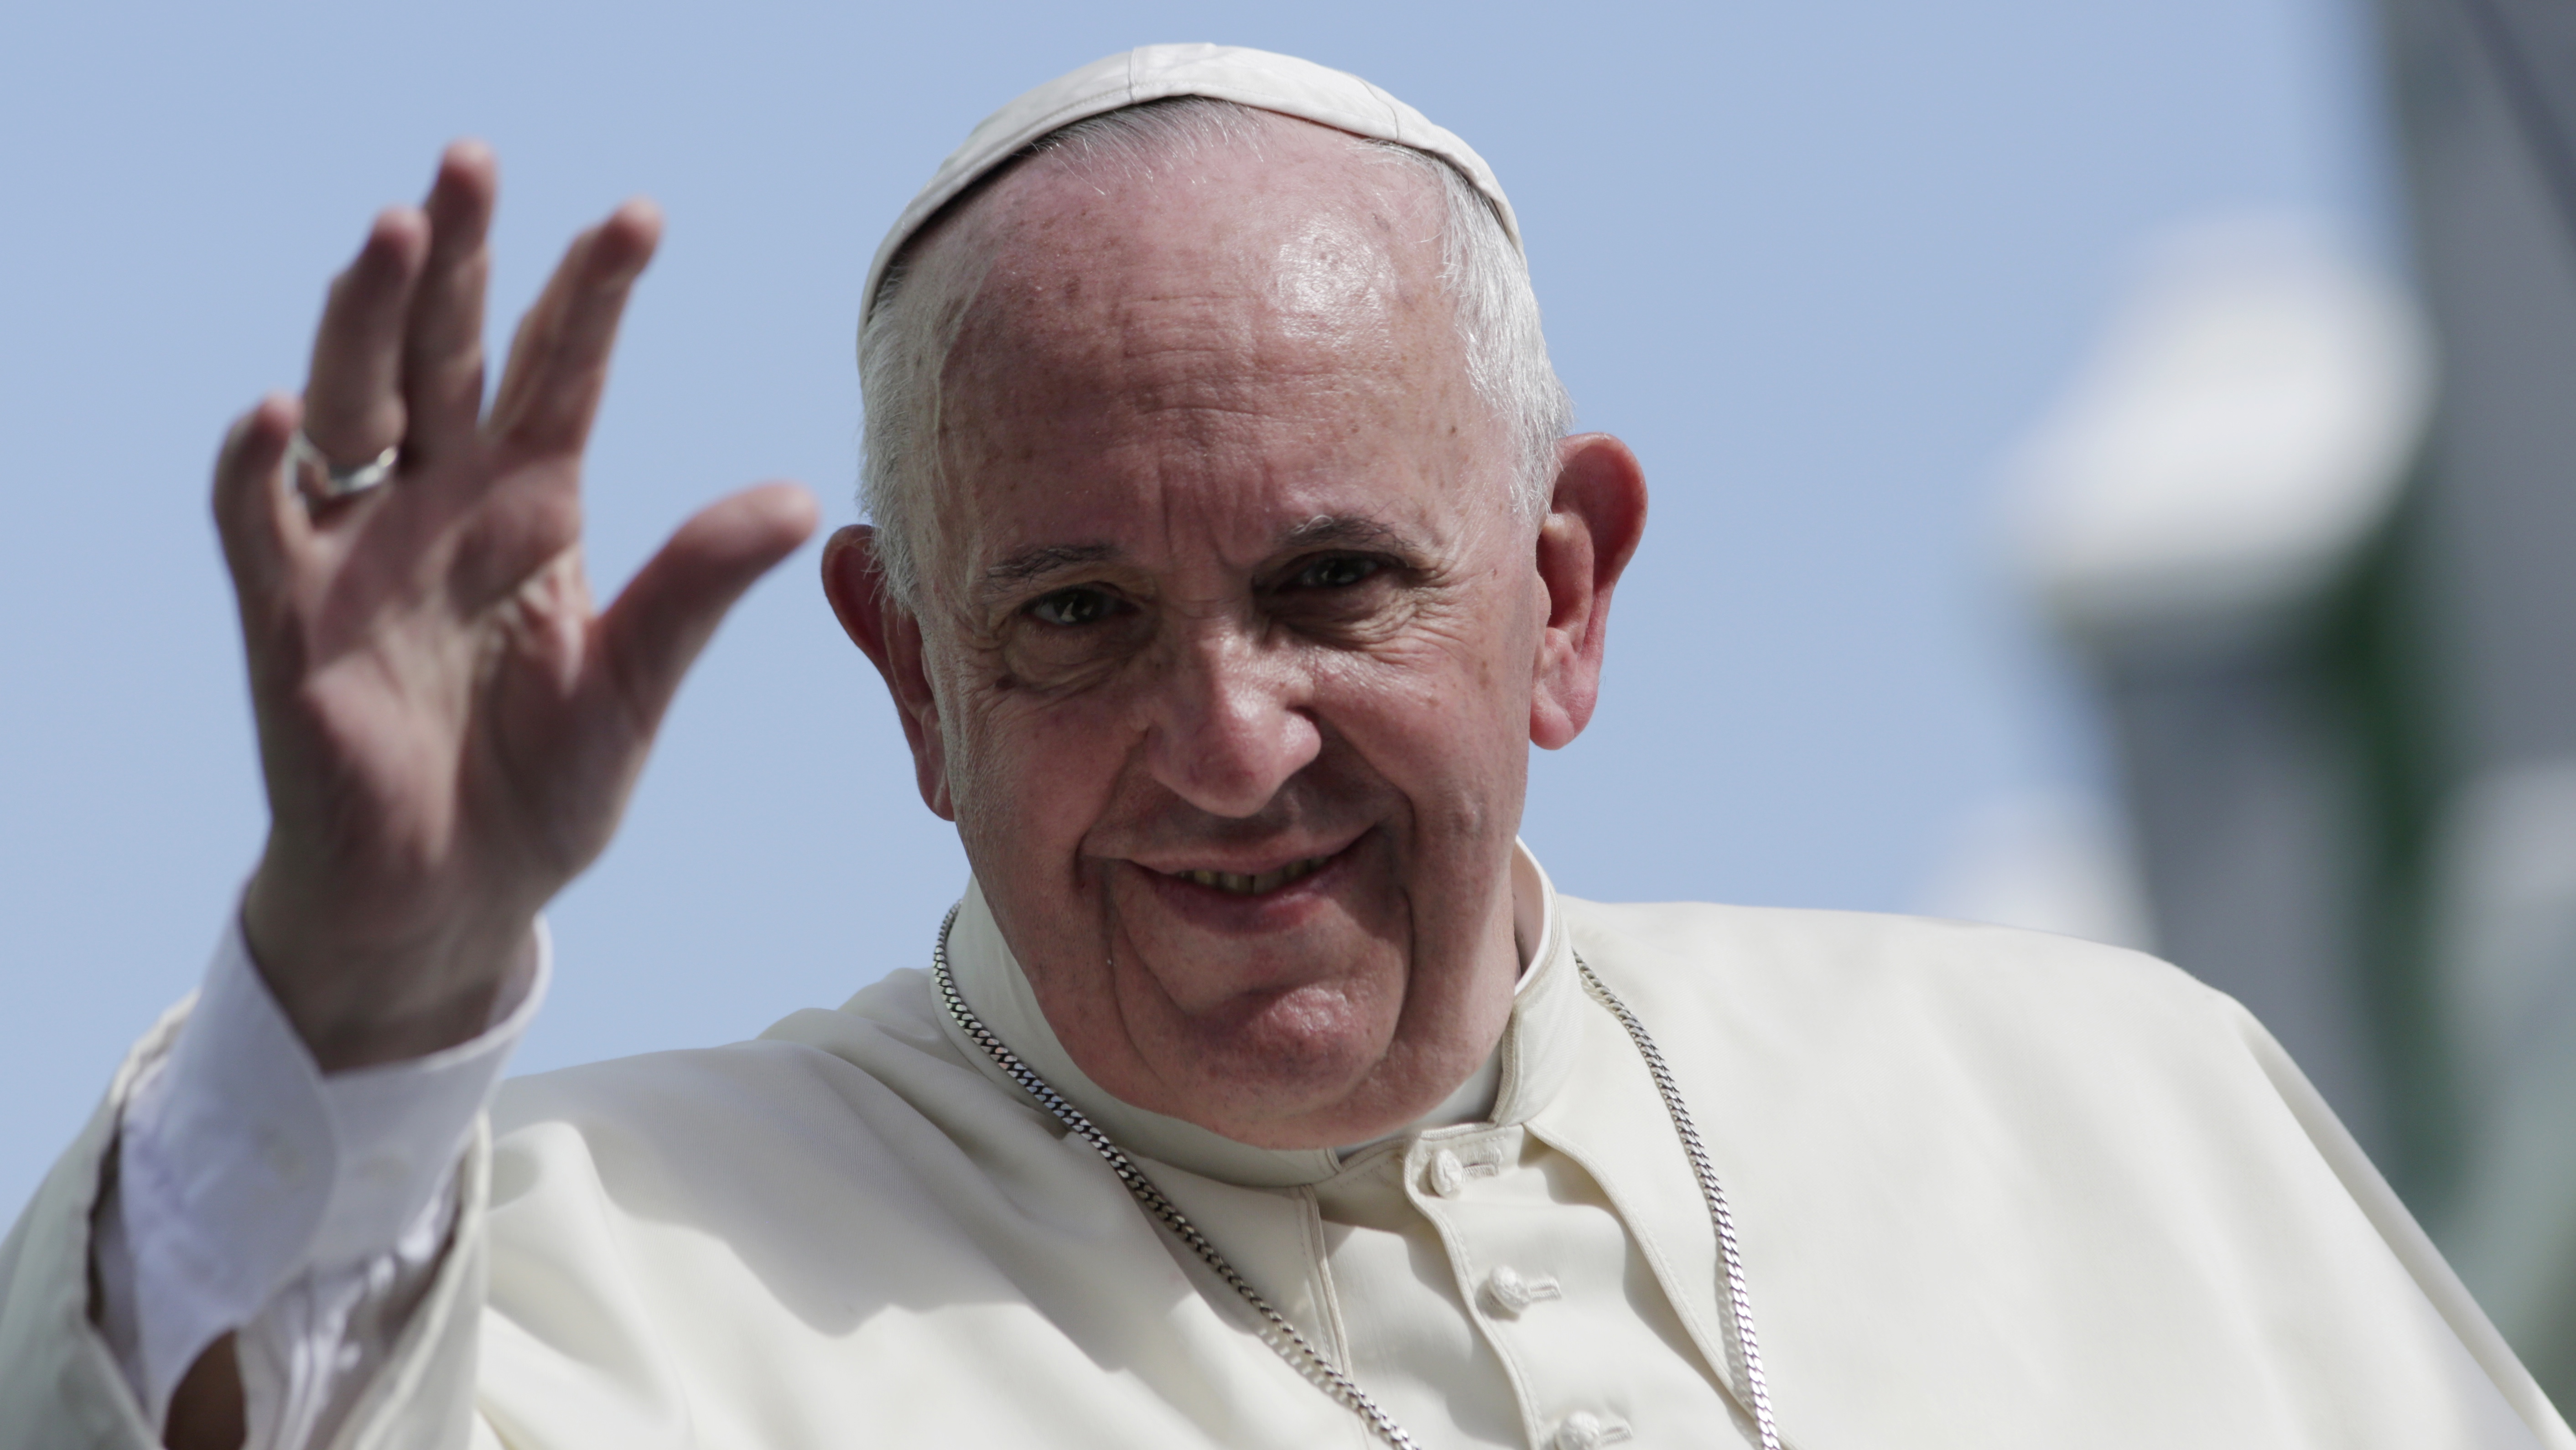 Pope Francis in Cuba - H 2015